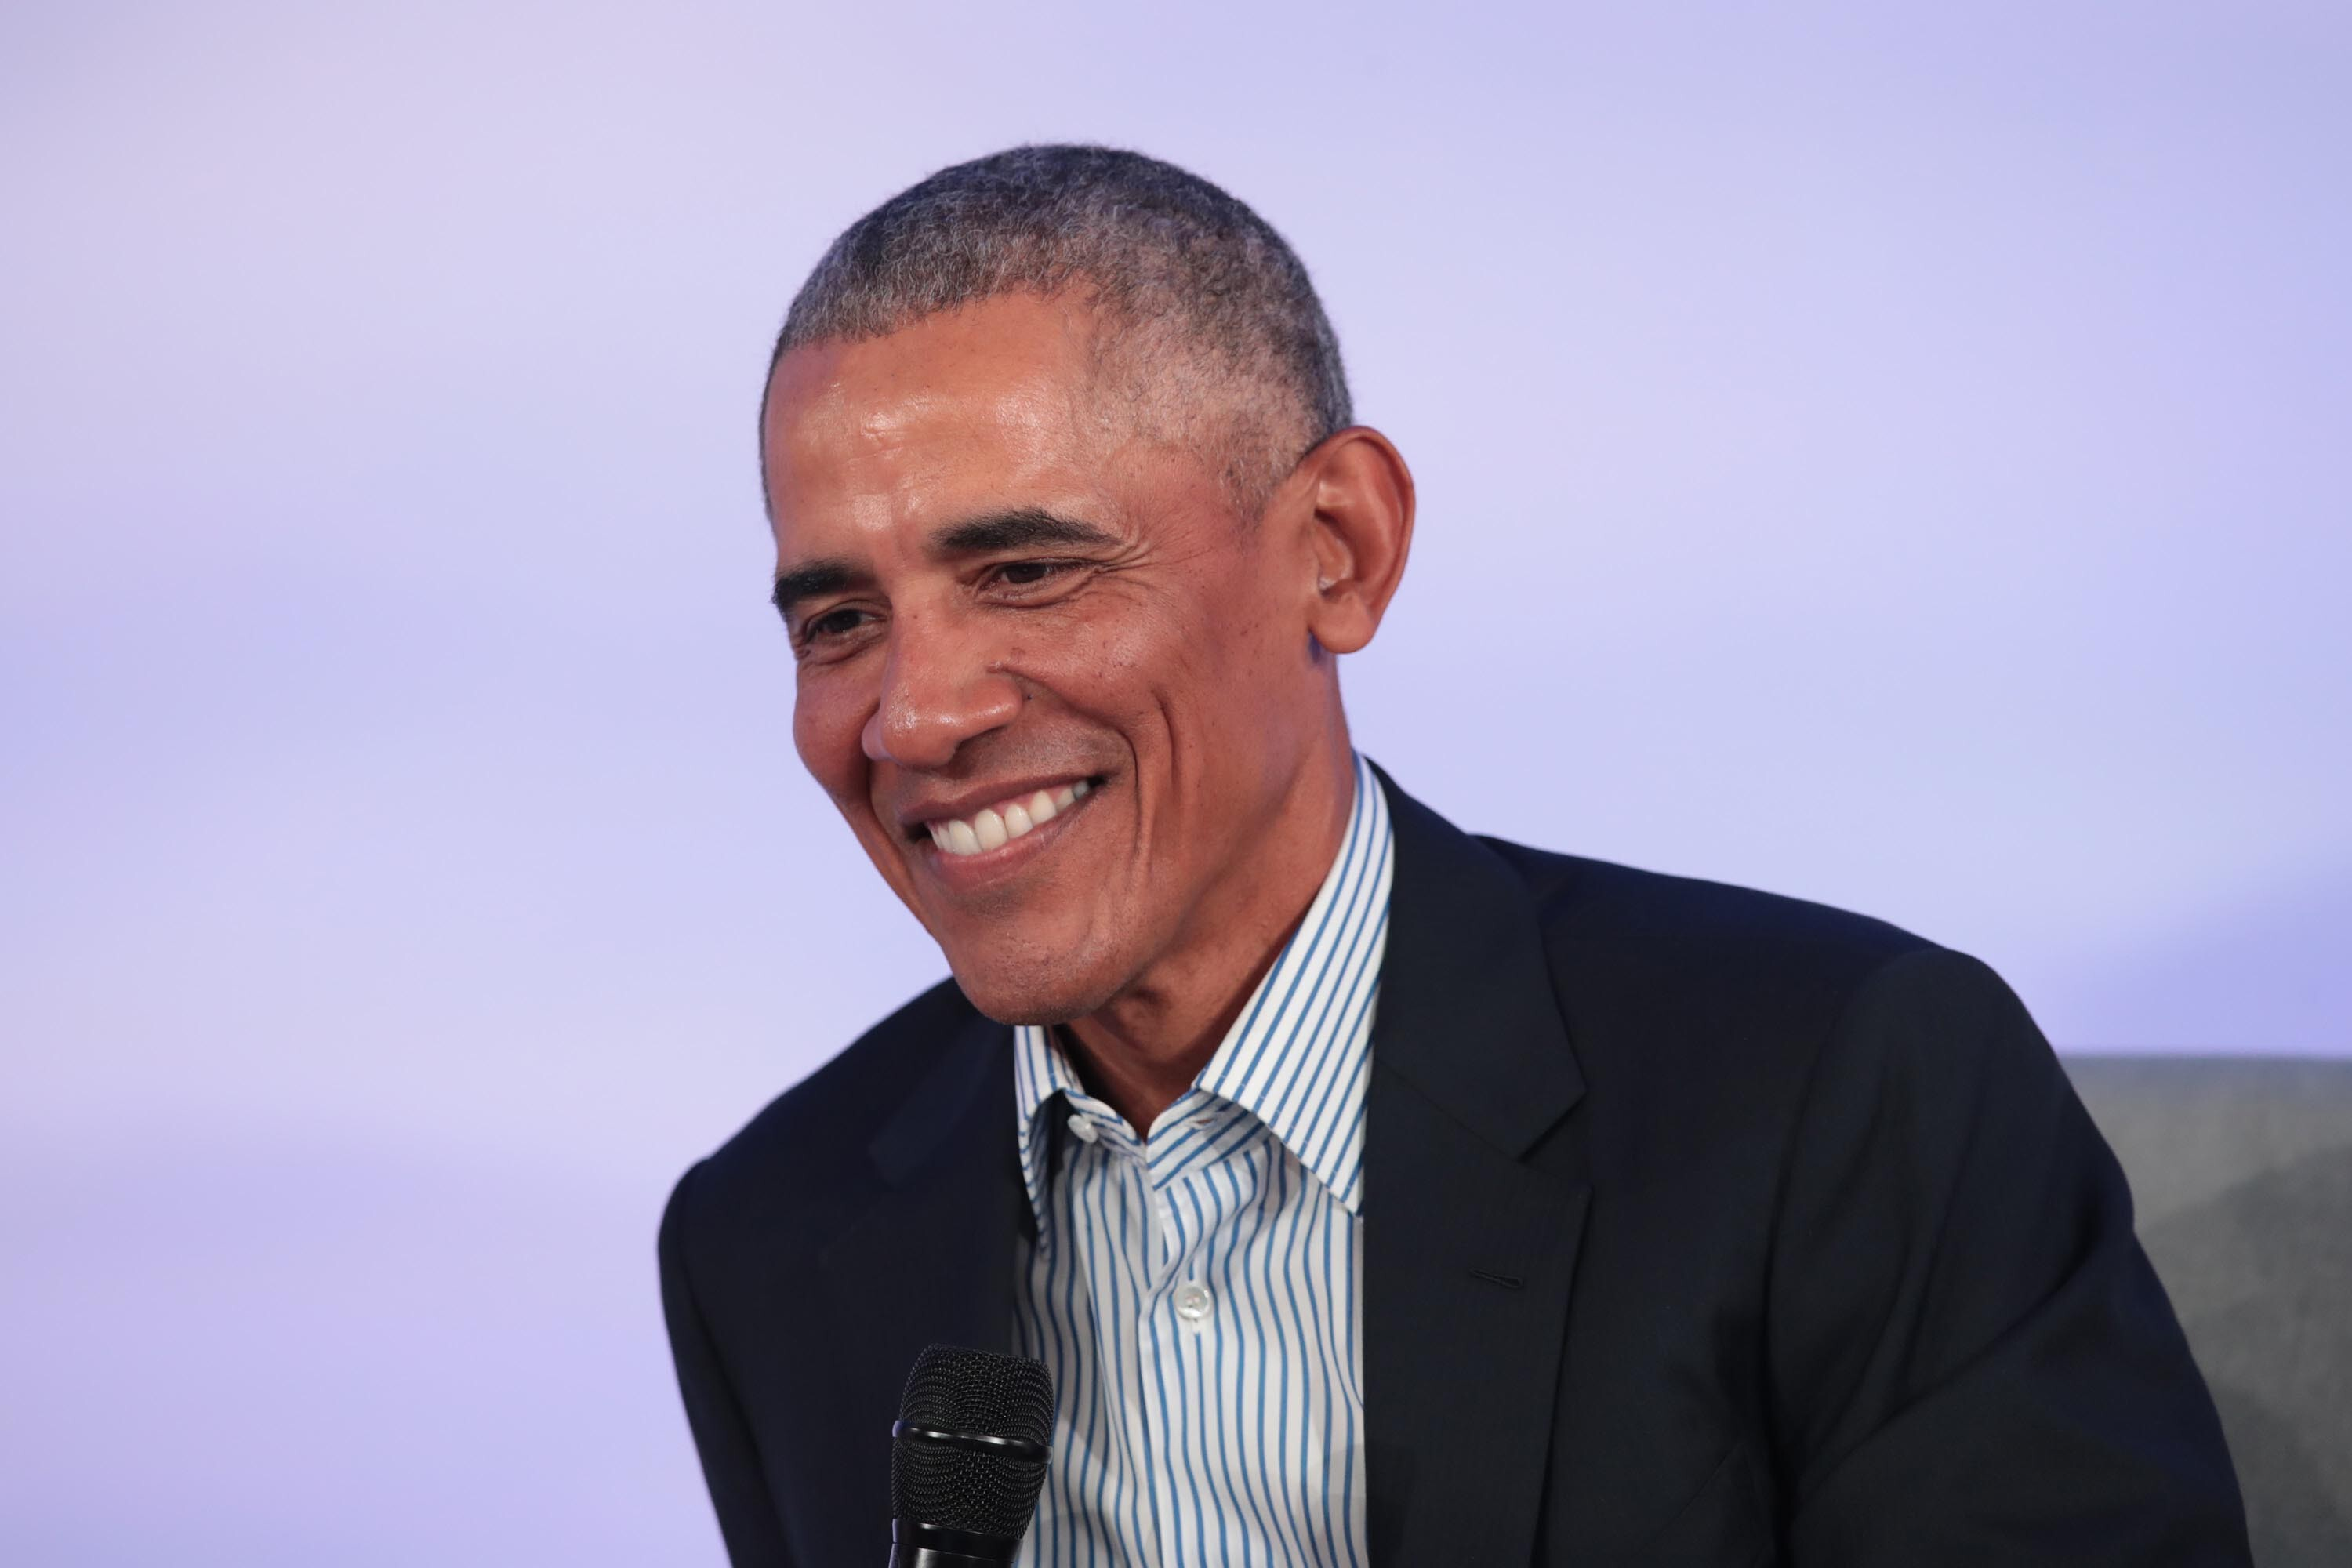 Obama to travel to Glasgow for UN climate summit